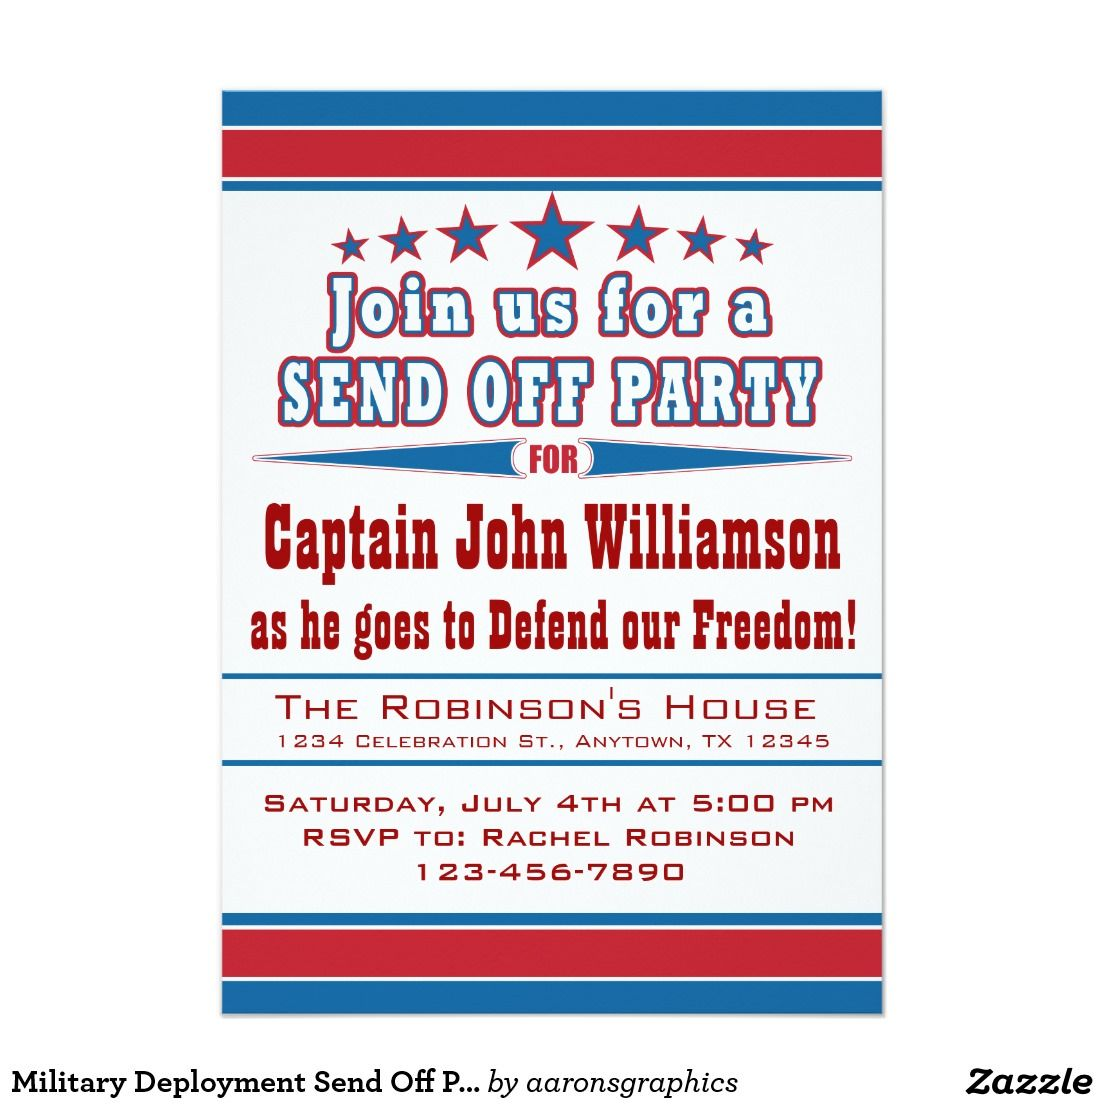 Military Deployment Send Off Party Invitation | Military deployment ...